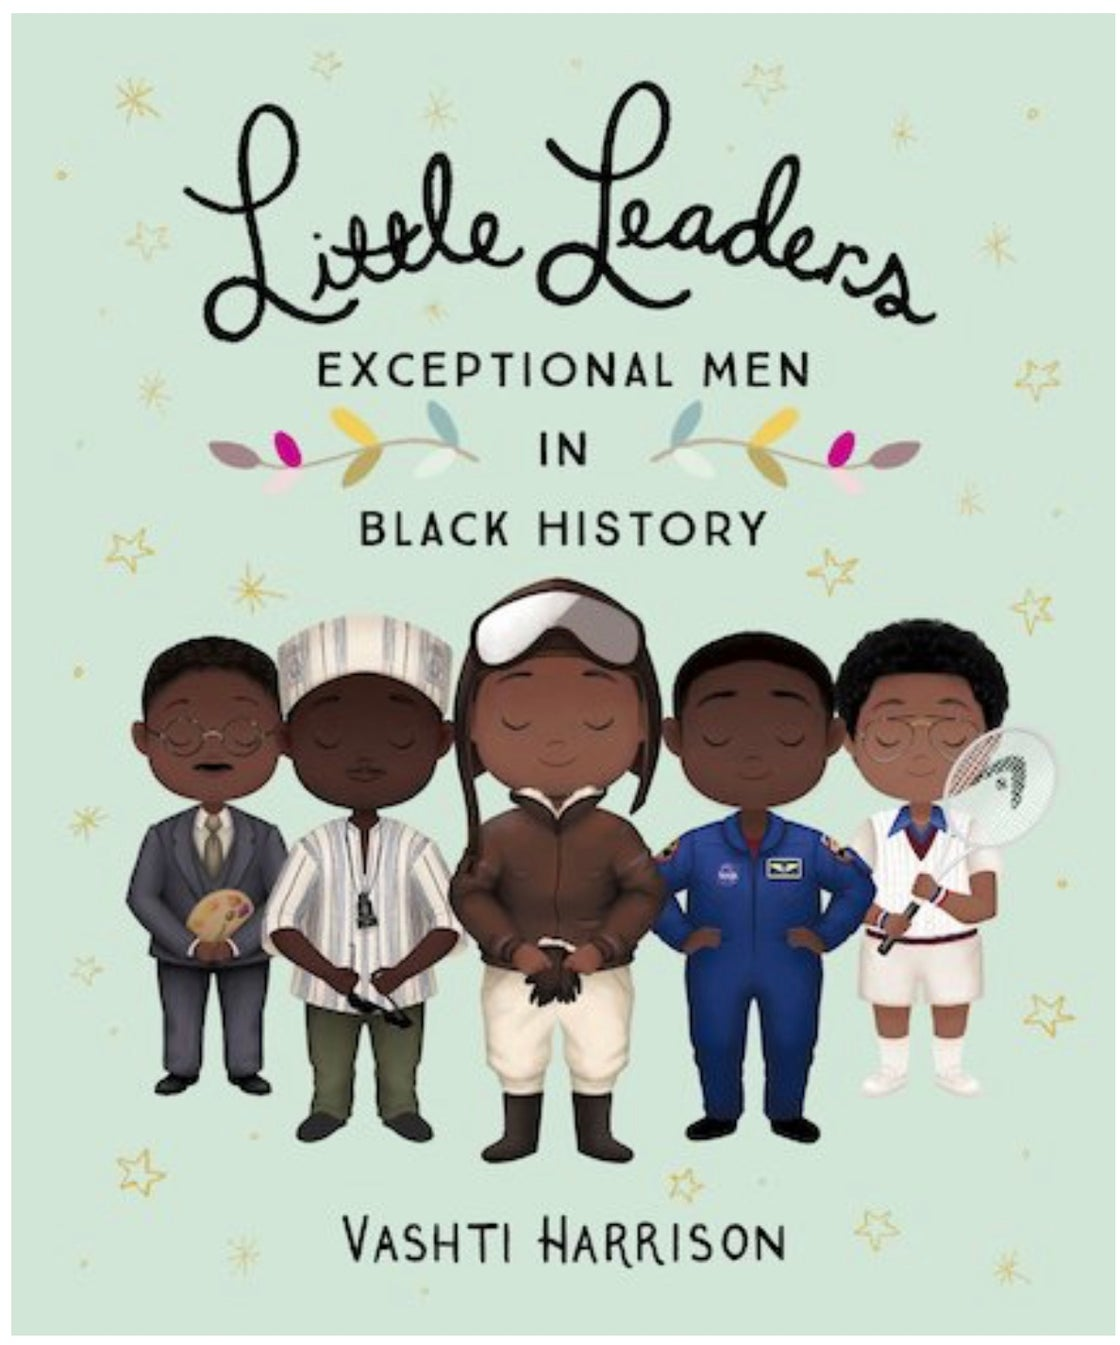 Image of Little Leaders: Exceptional Men in Black History